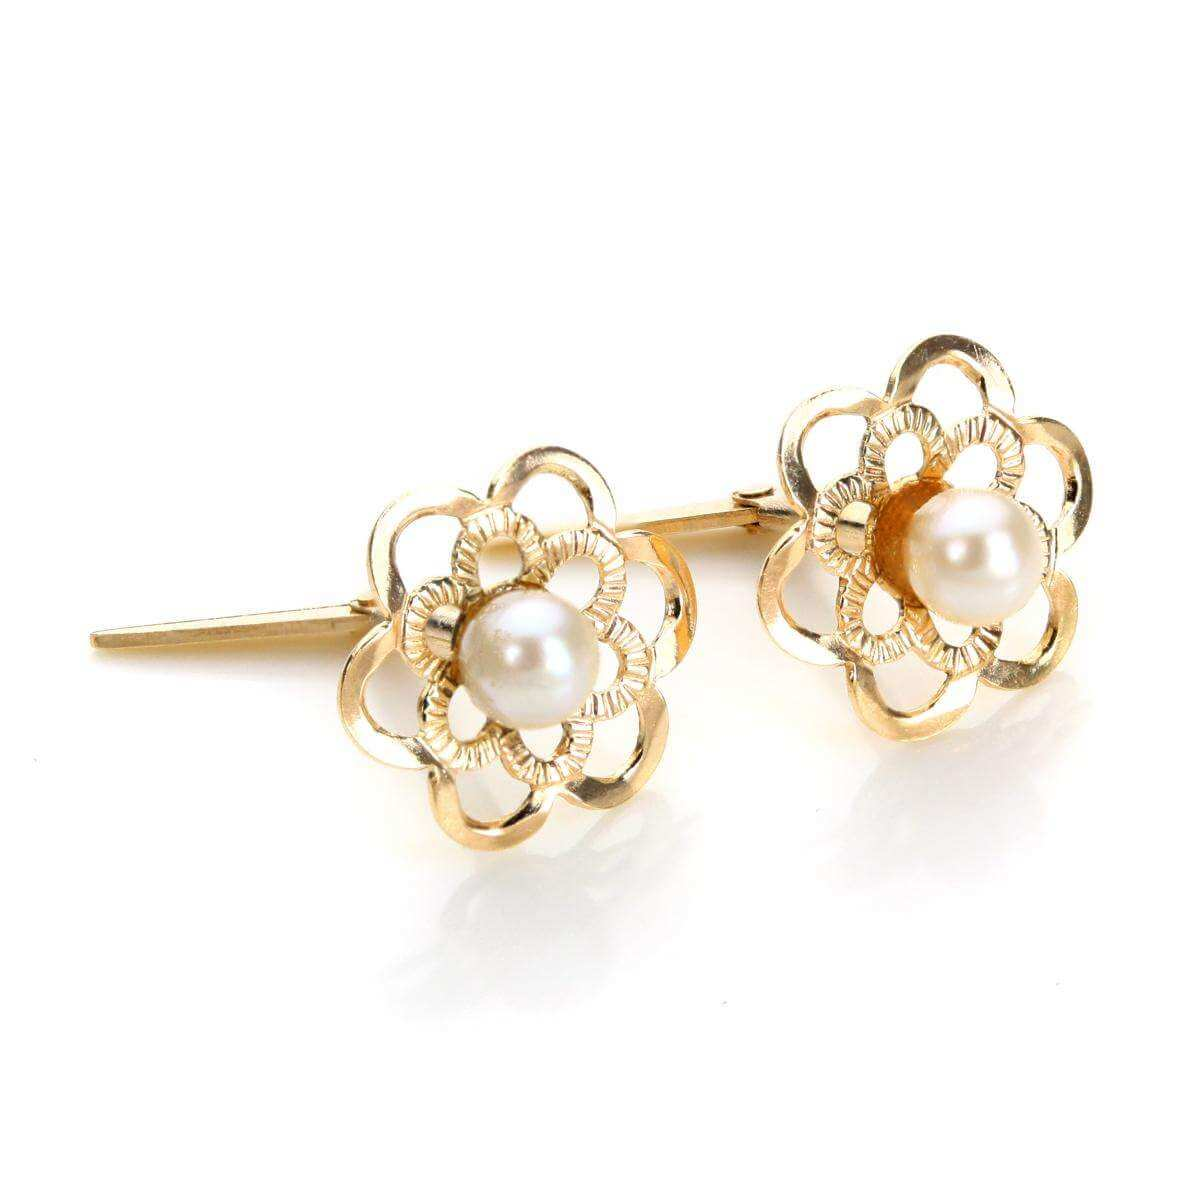 Andralok 9ct Yellow Gold Pearl Flower 3mm Stud Earrings